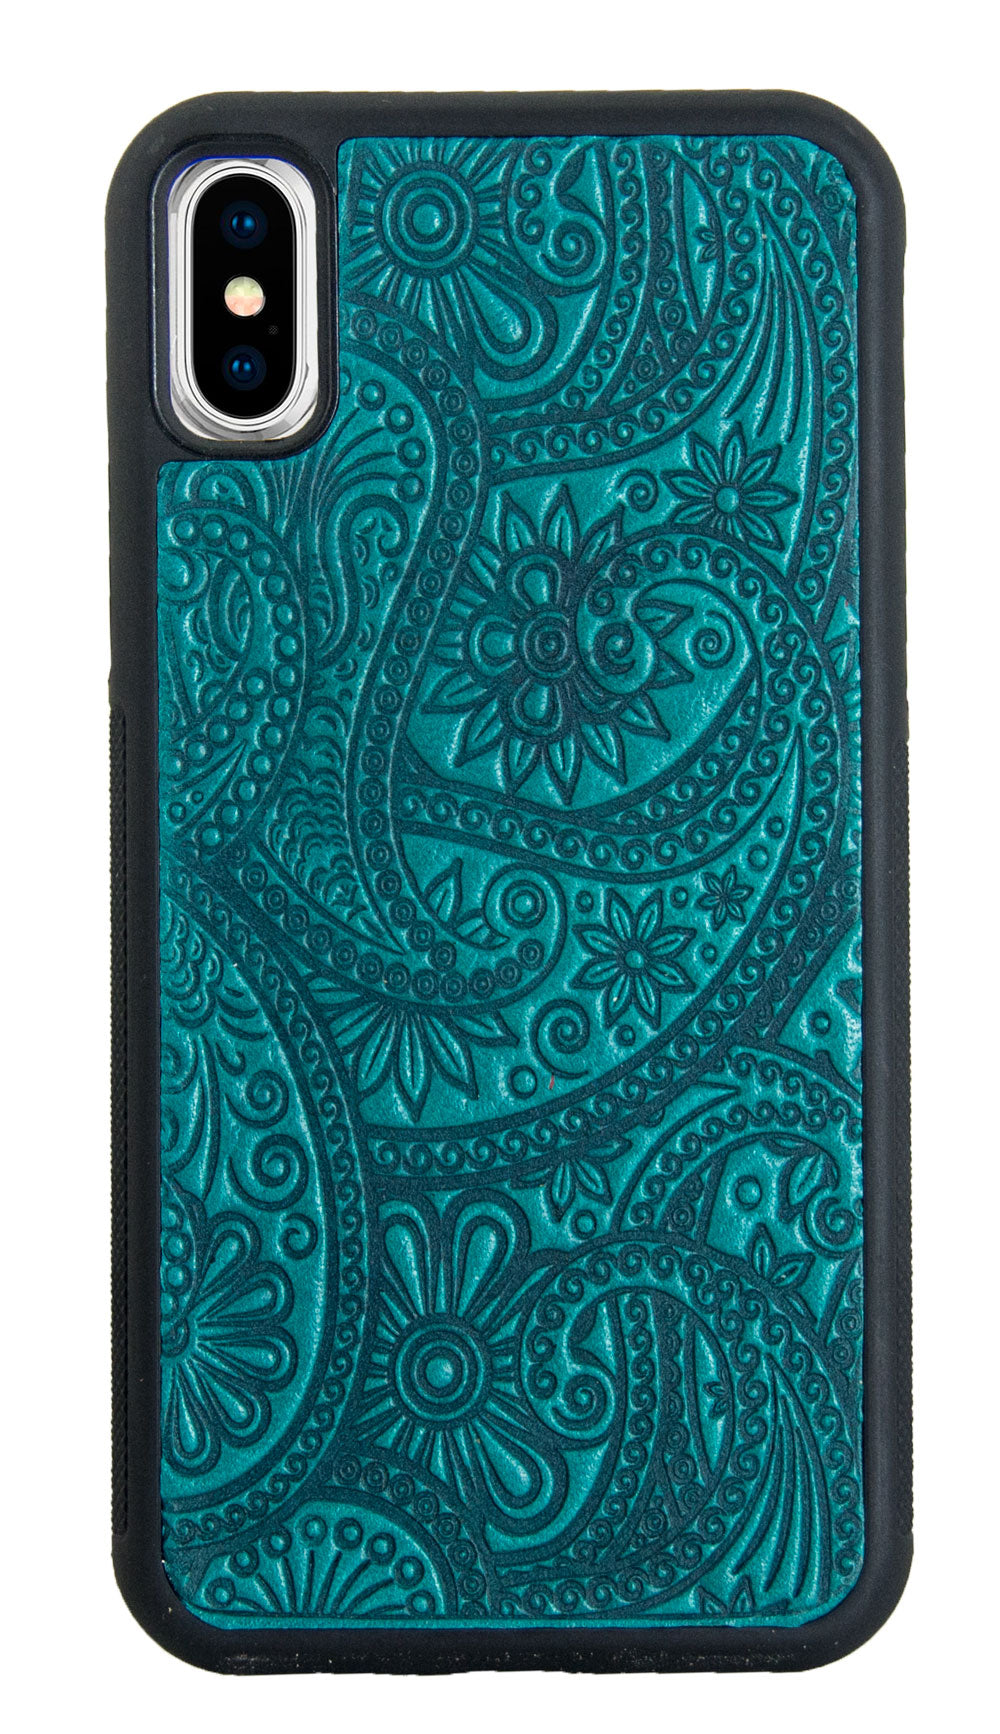 iPhone XR Leather Case, Paisley in Teal